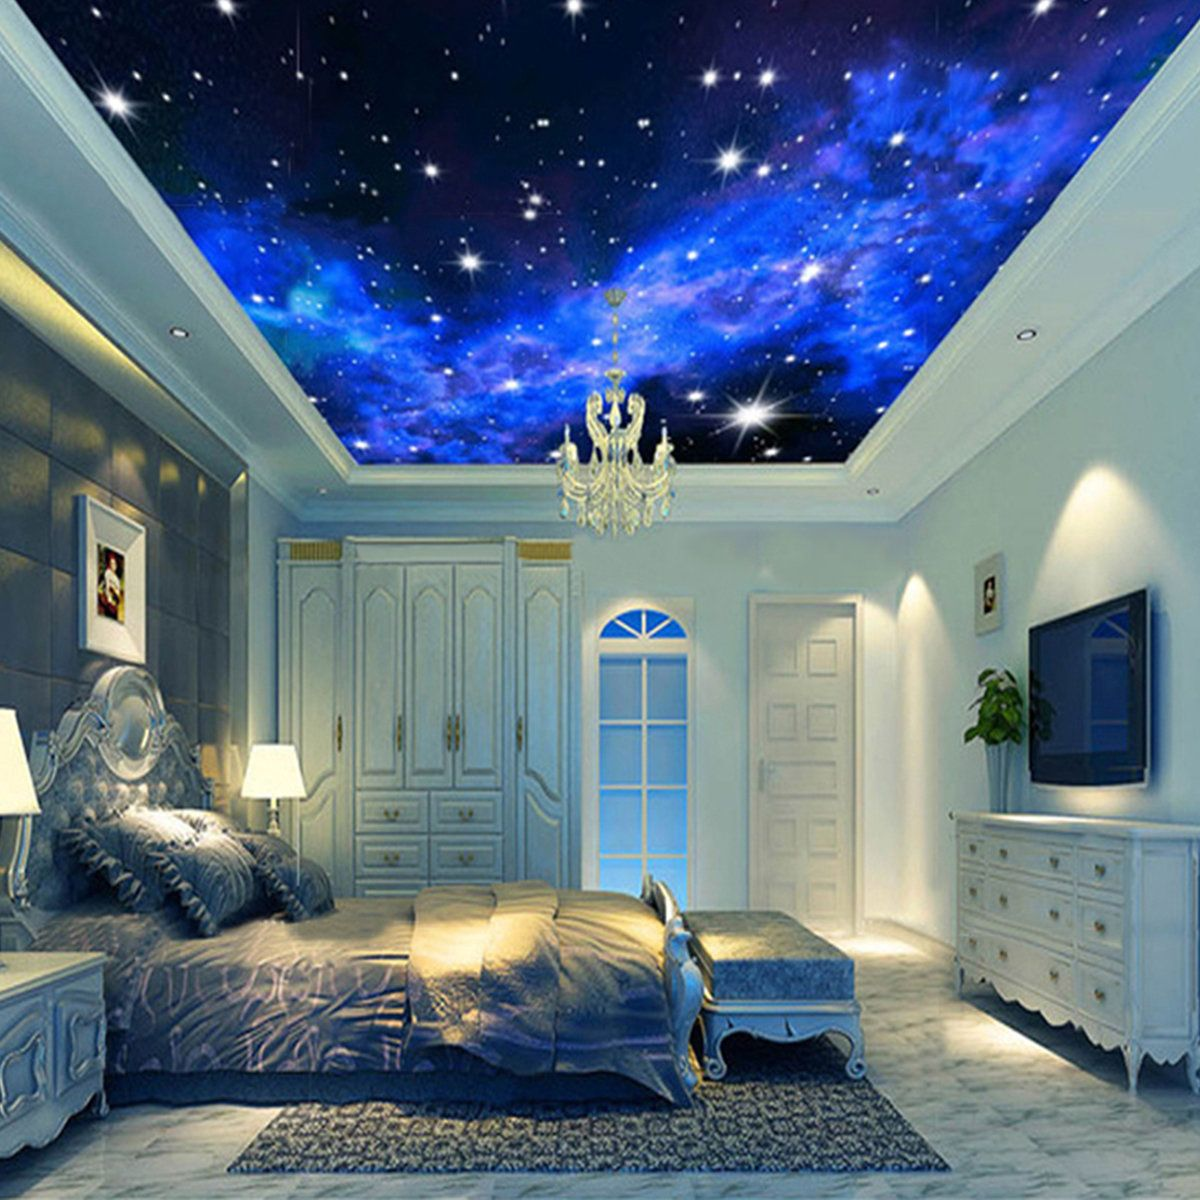 3d wallpaper mural night clouds star sky wall paper for Ceiling mural wallpaper